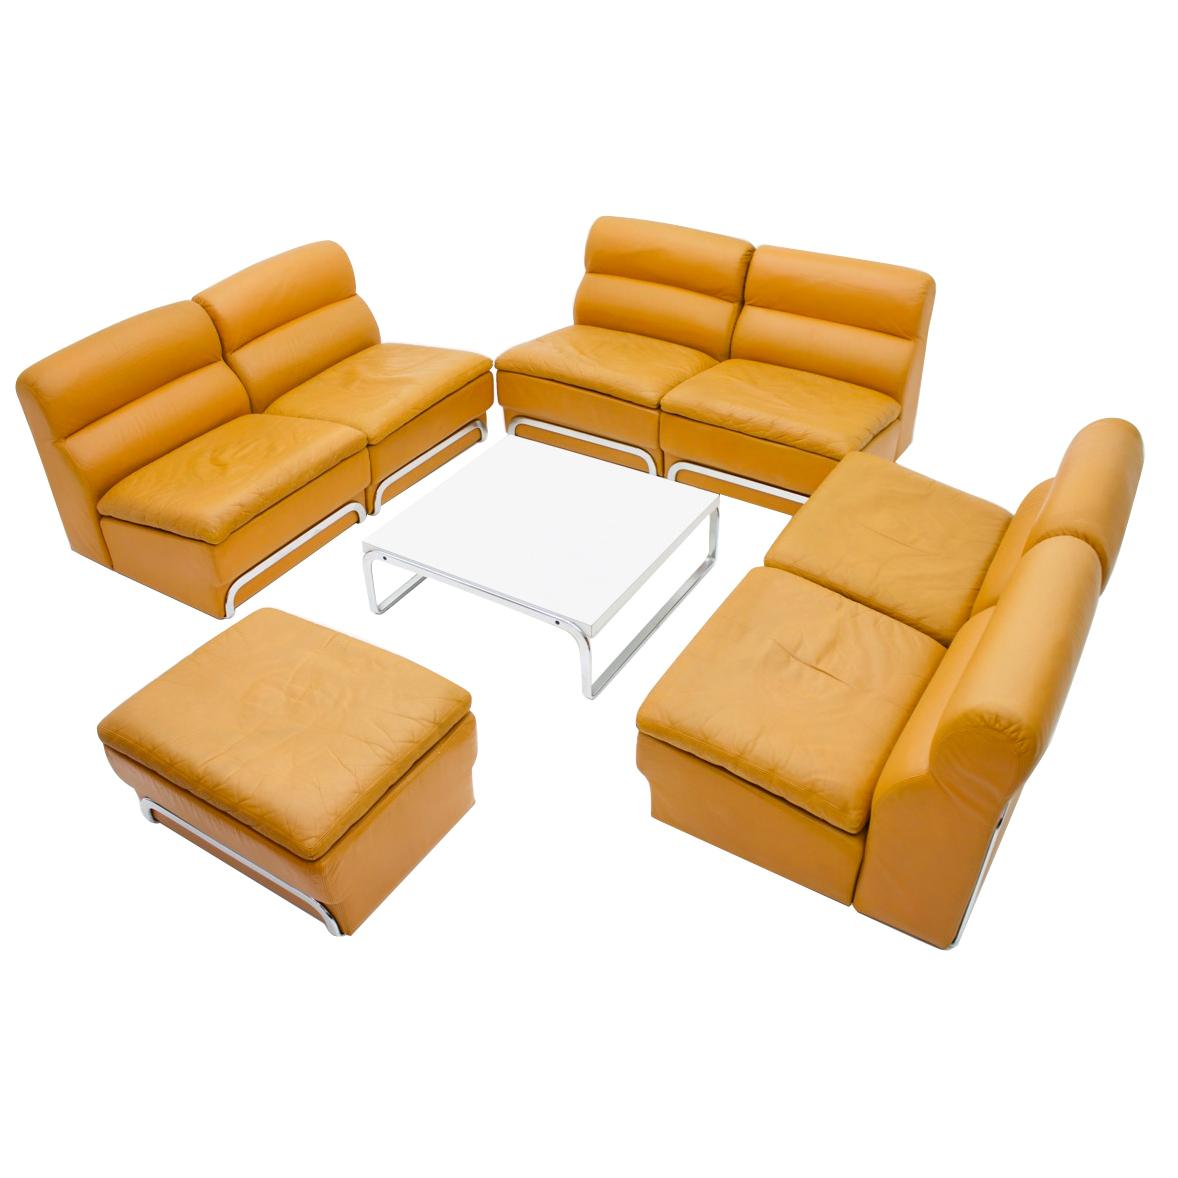 Modular Seating Group U0026 Coffee Table Leather Sofa By Horst Brüning For Kill  1970